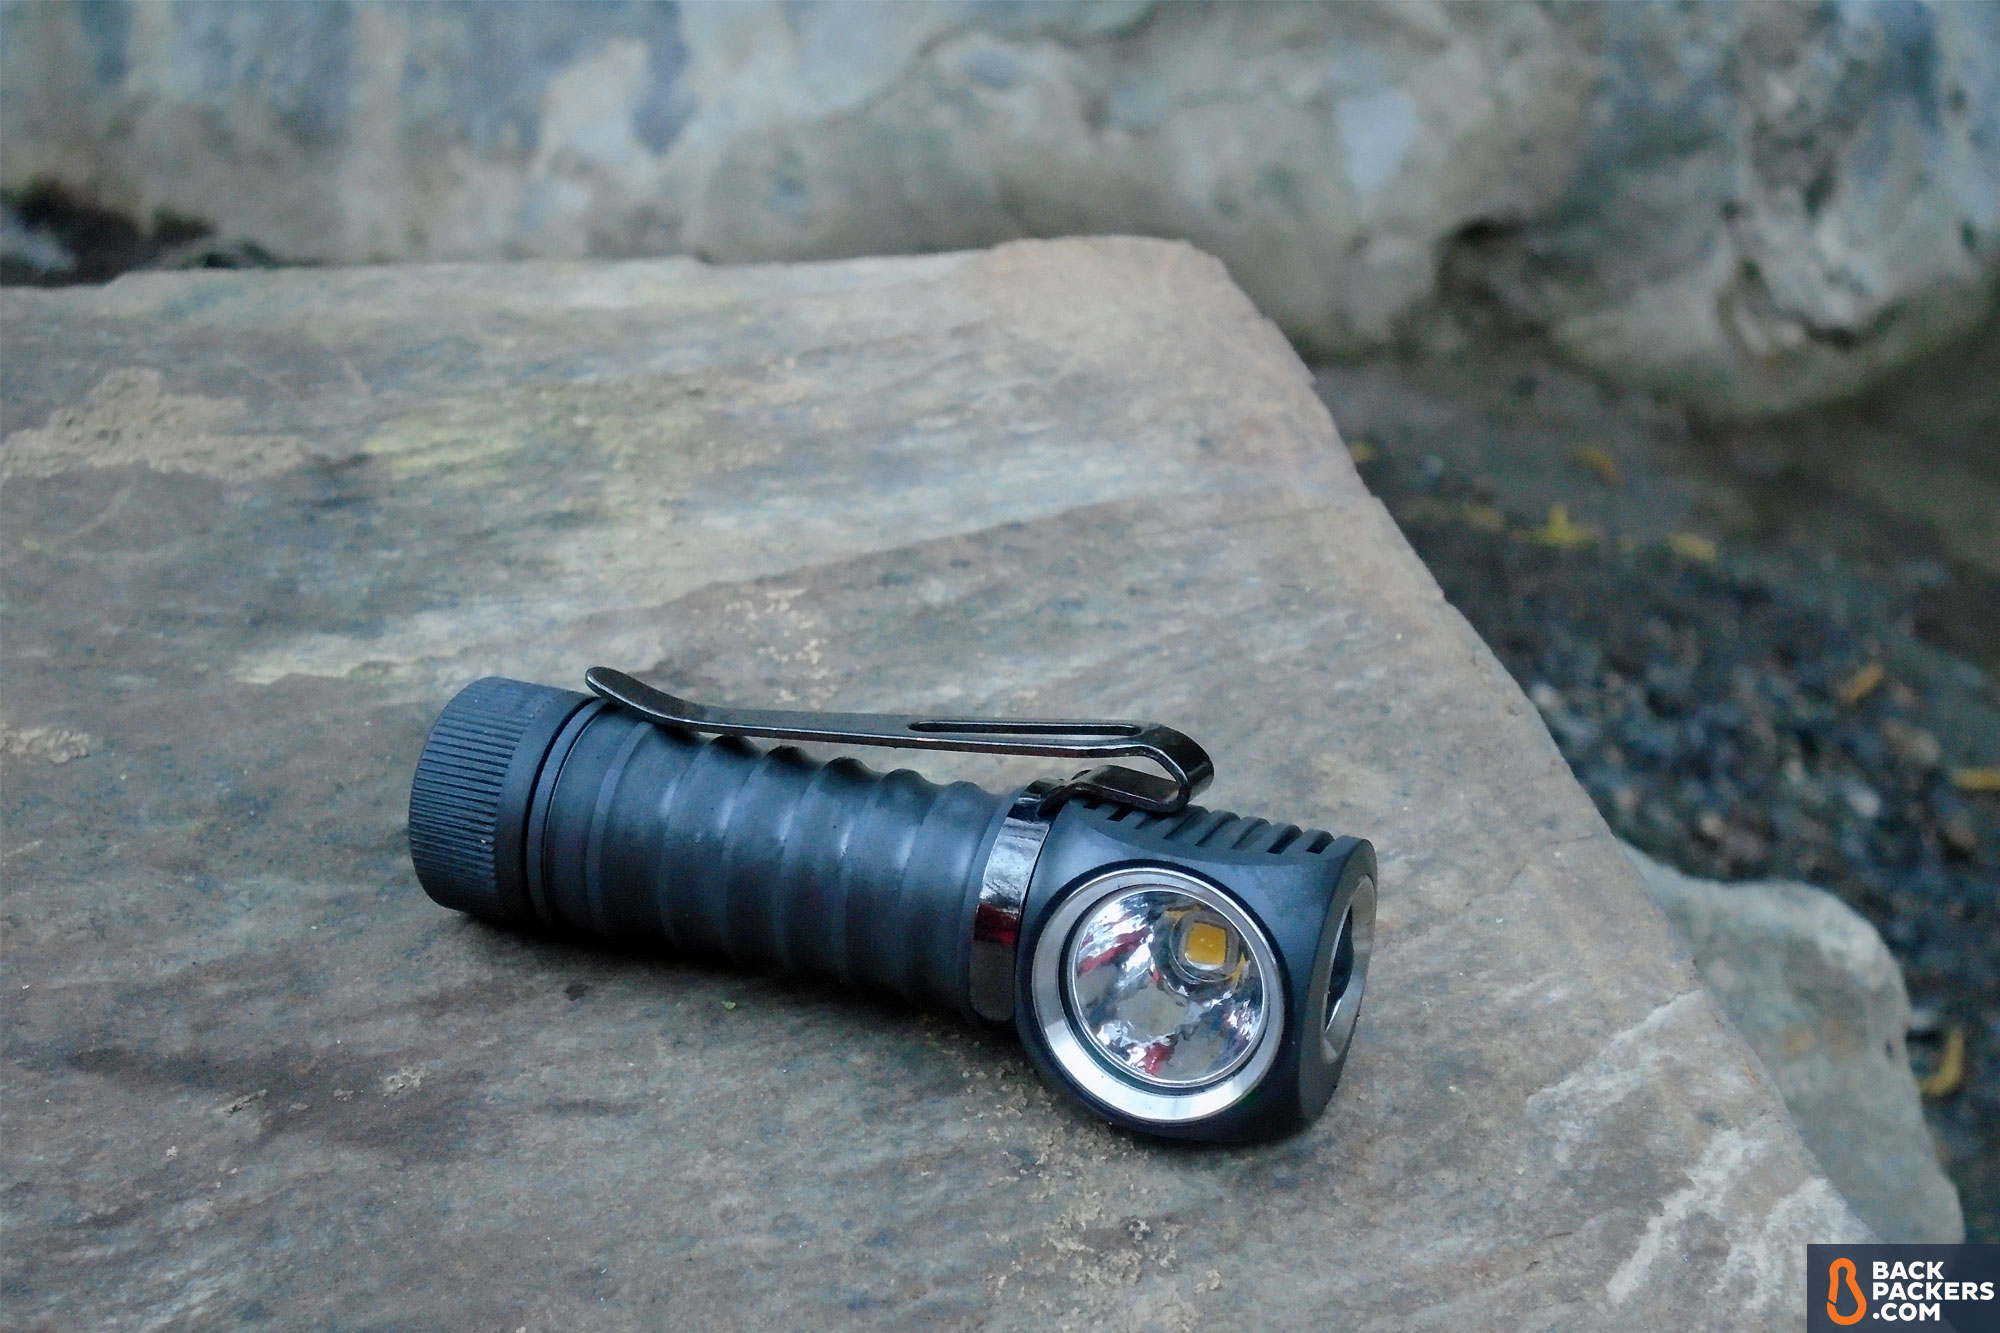 Zebralight-H52w-without-band